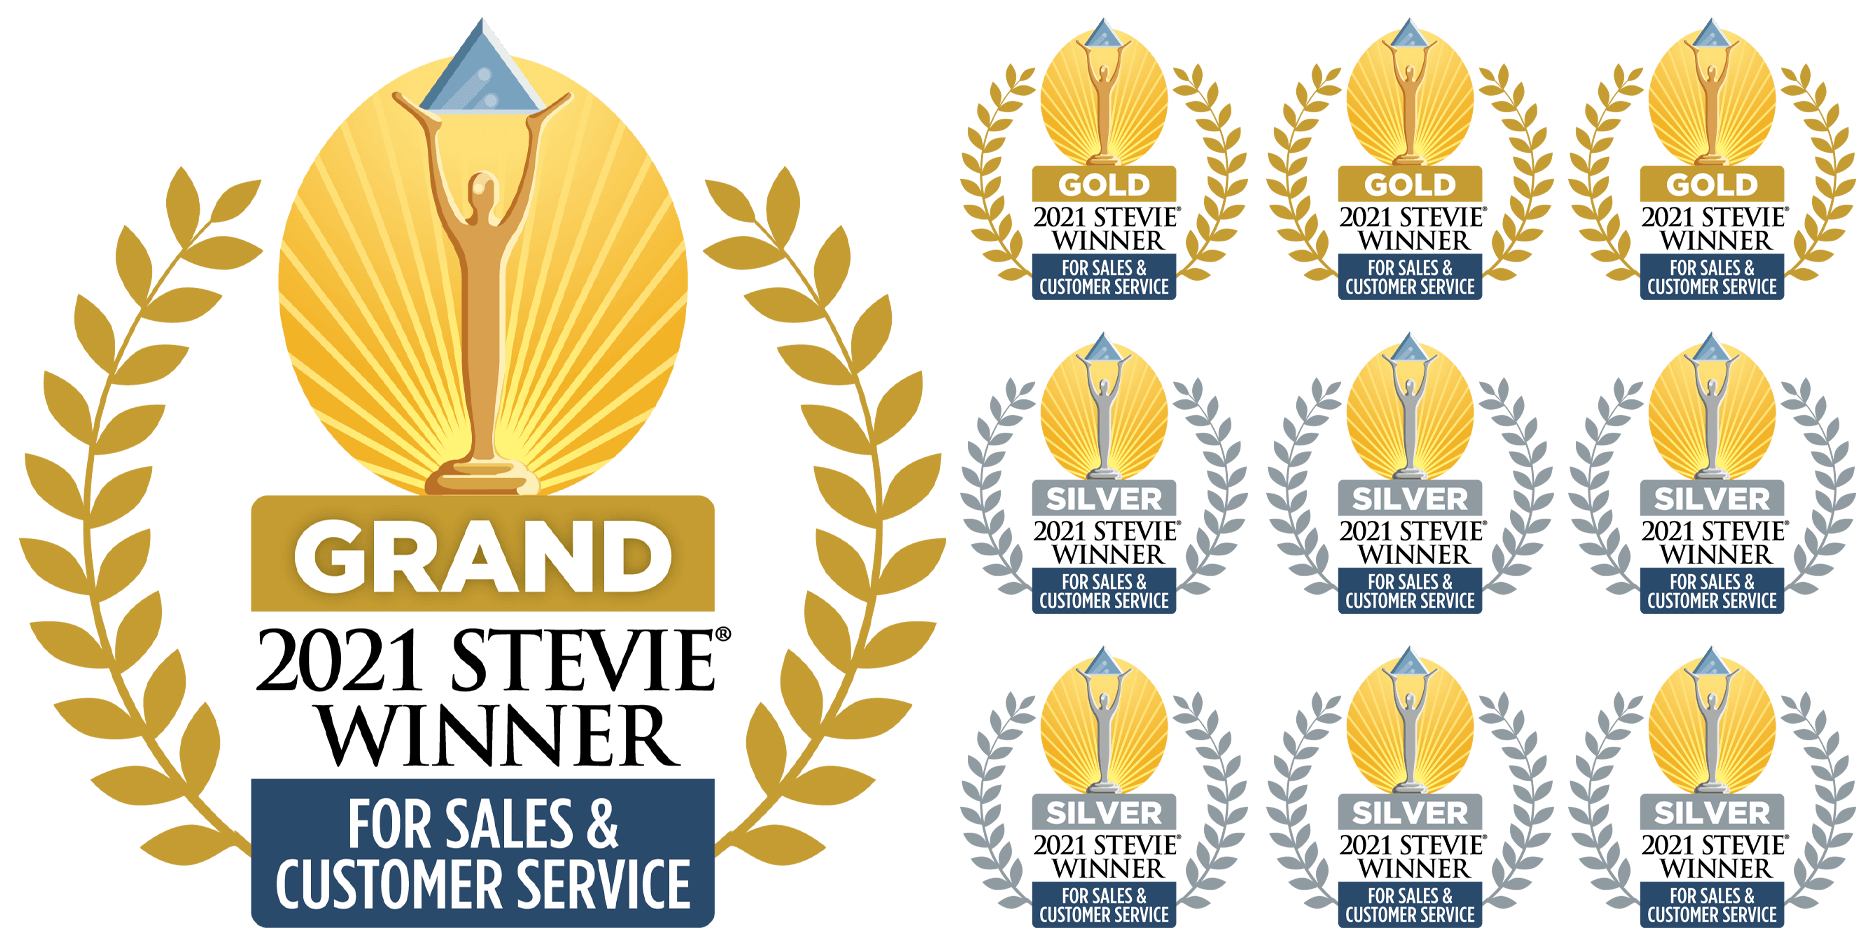 Stevie Award Winner for Sales and Customer Service in 2021